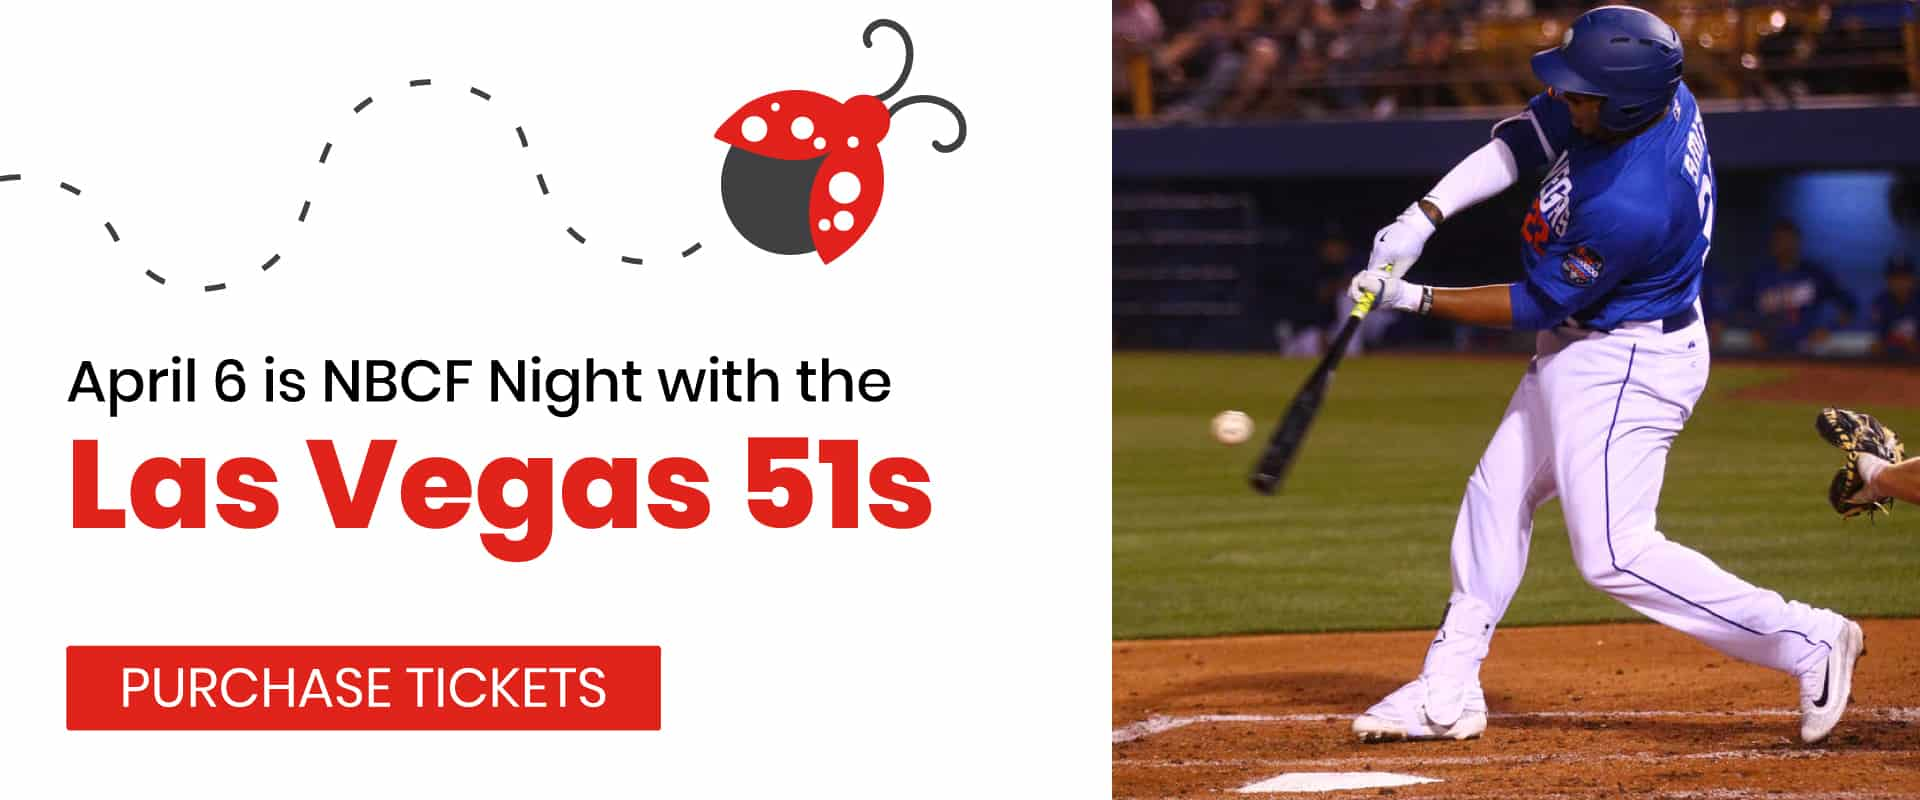 NBCF Night with the Las Vegas 51s